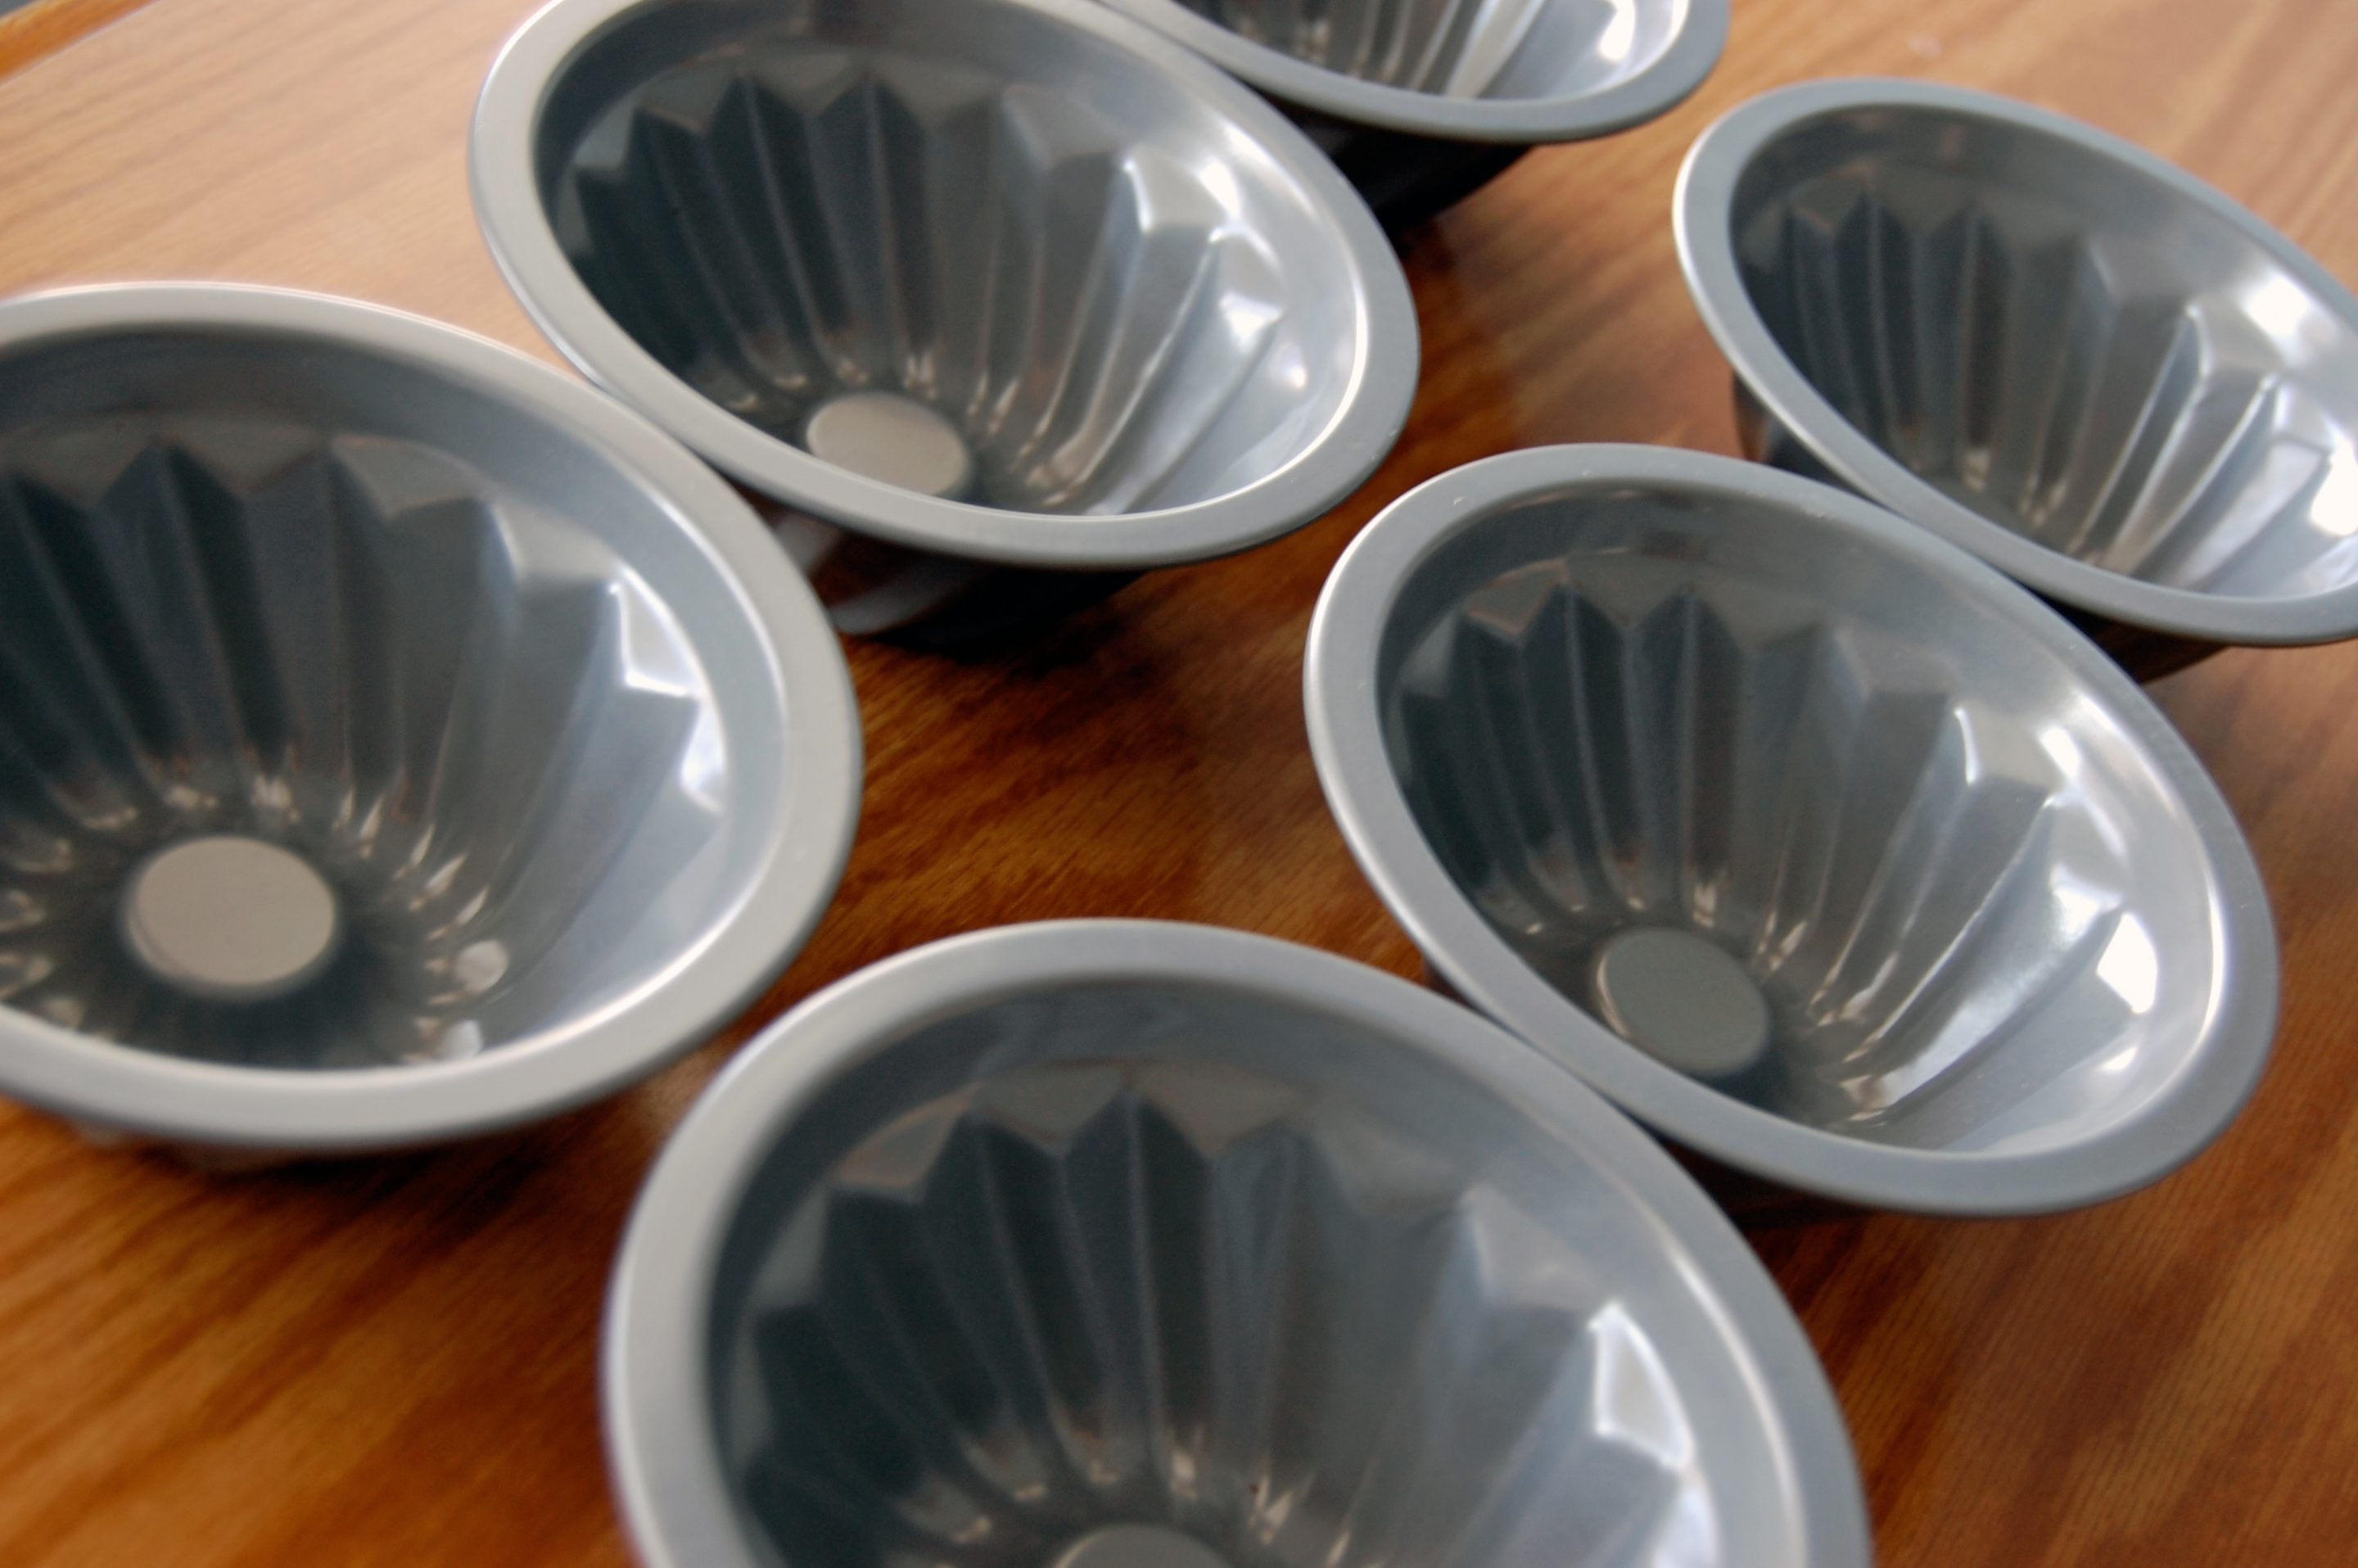 Wilton Mini Cake Pans